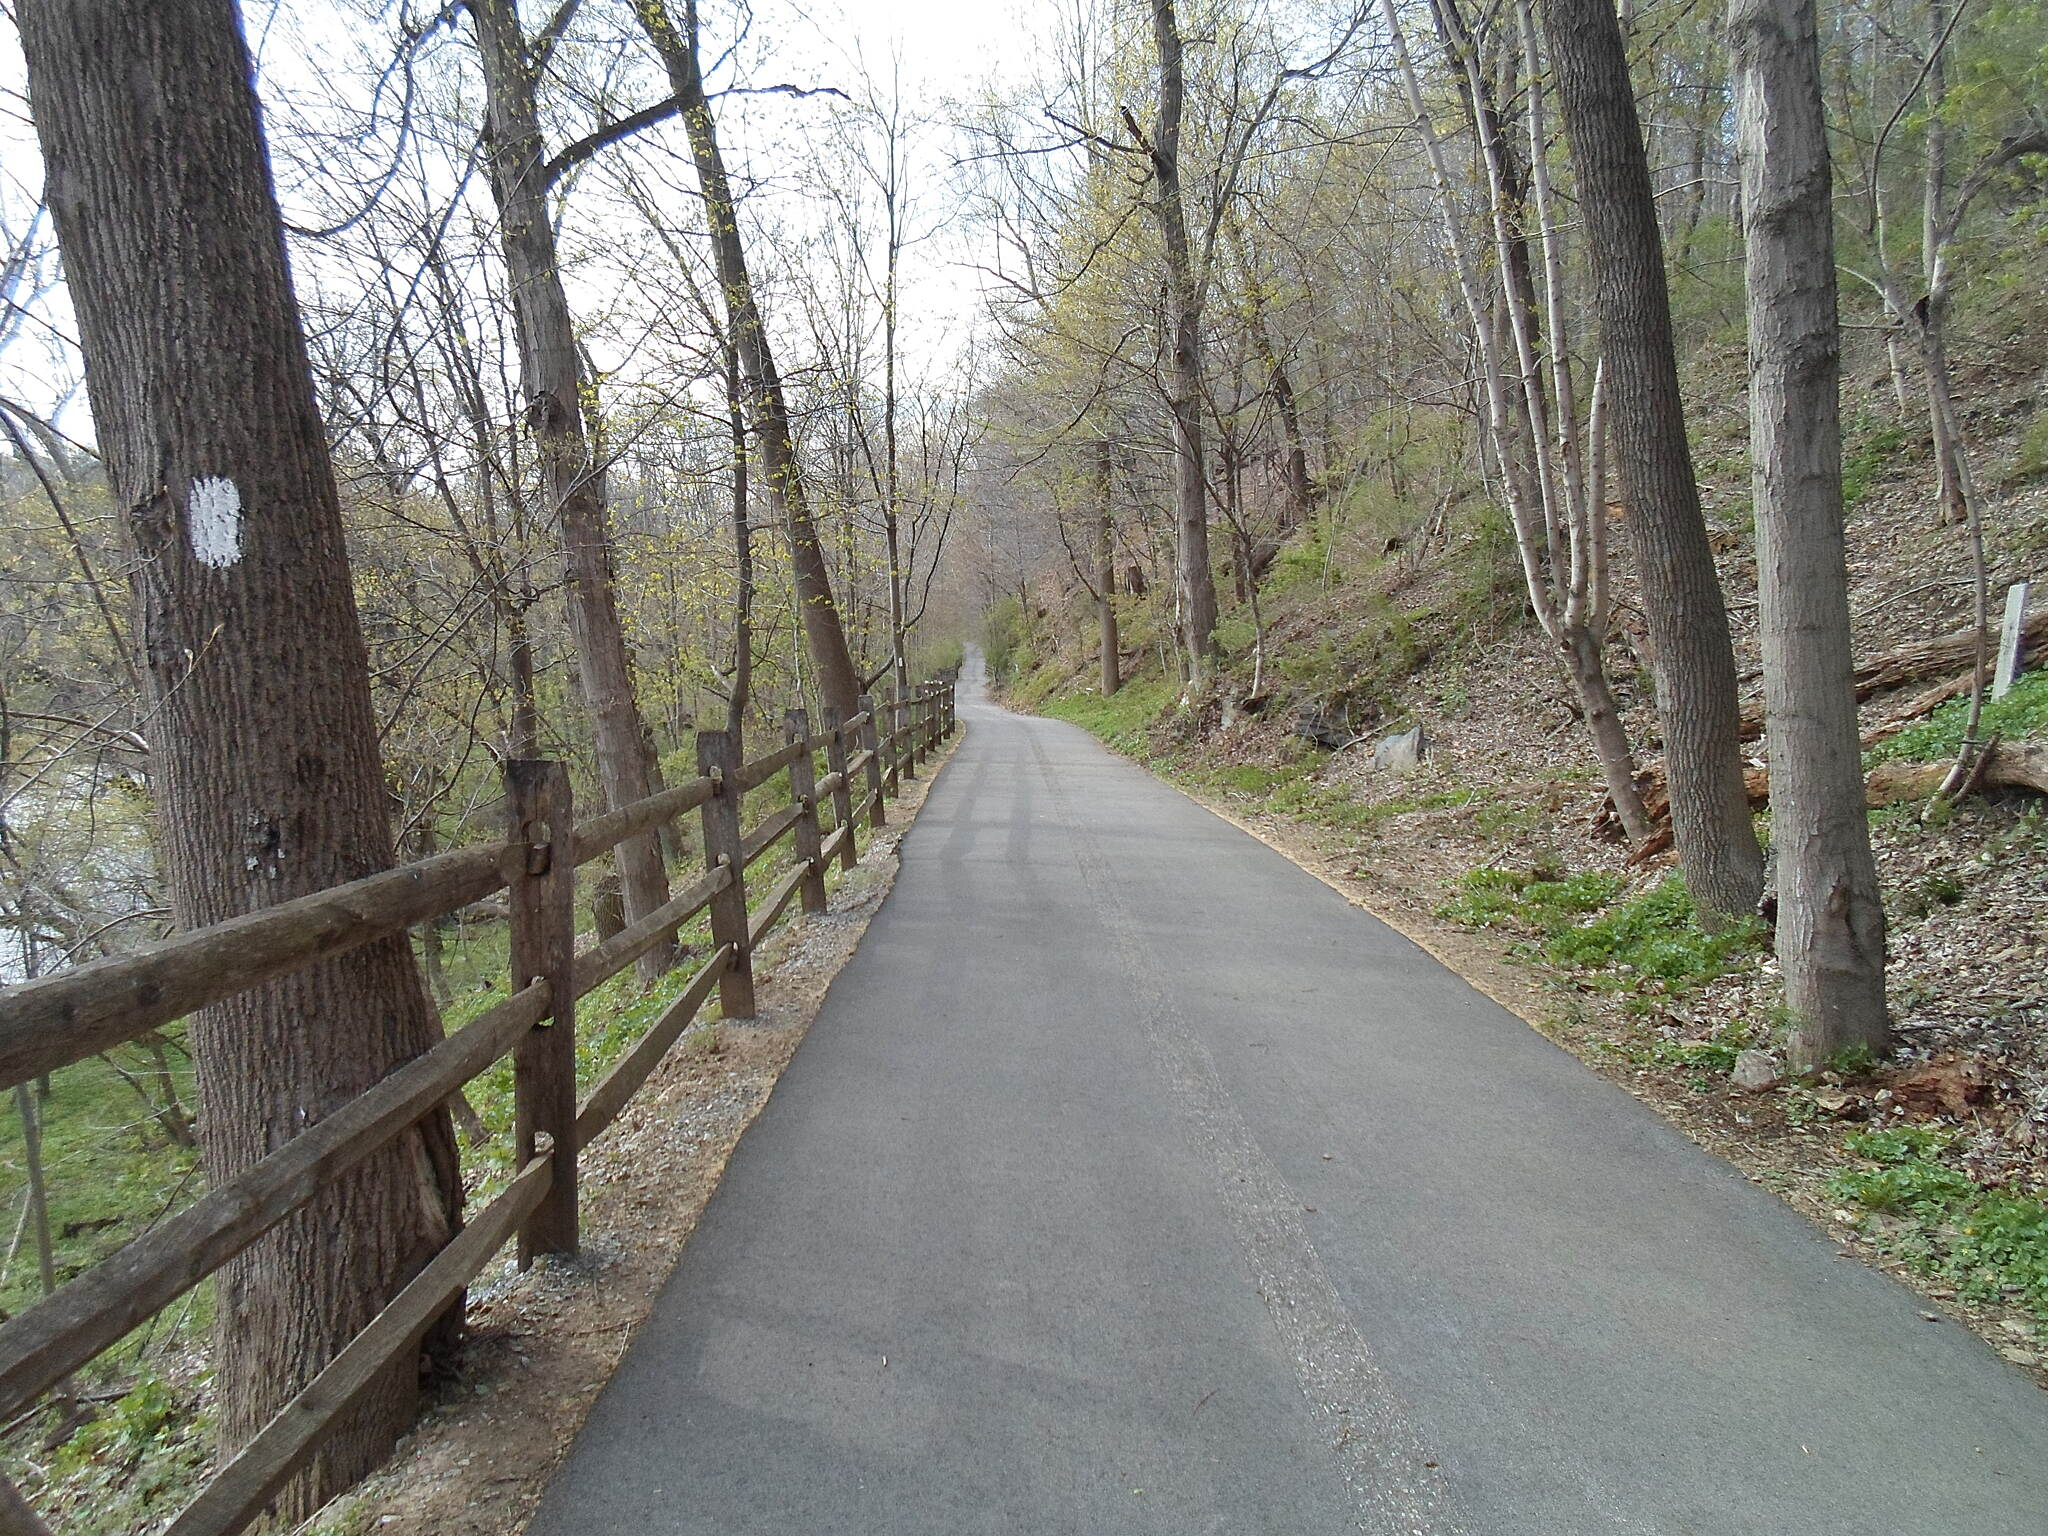 East Branch Brandywine Trail East Branch Brandywine Trail Following the old trolley grade south of Harmony Hill Road. Taken April 2015.